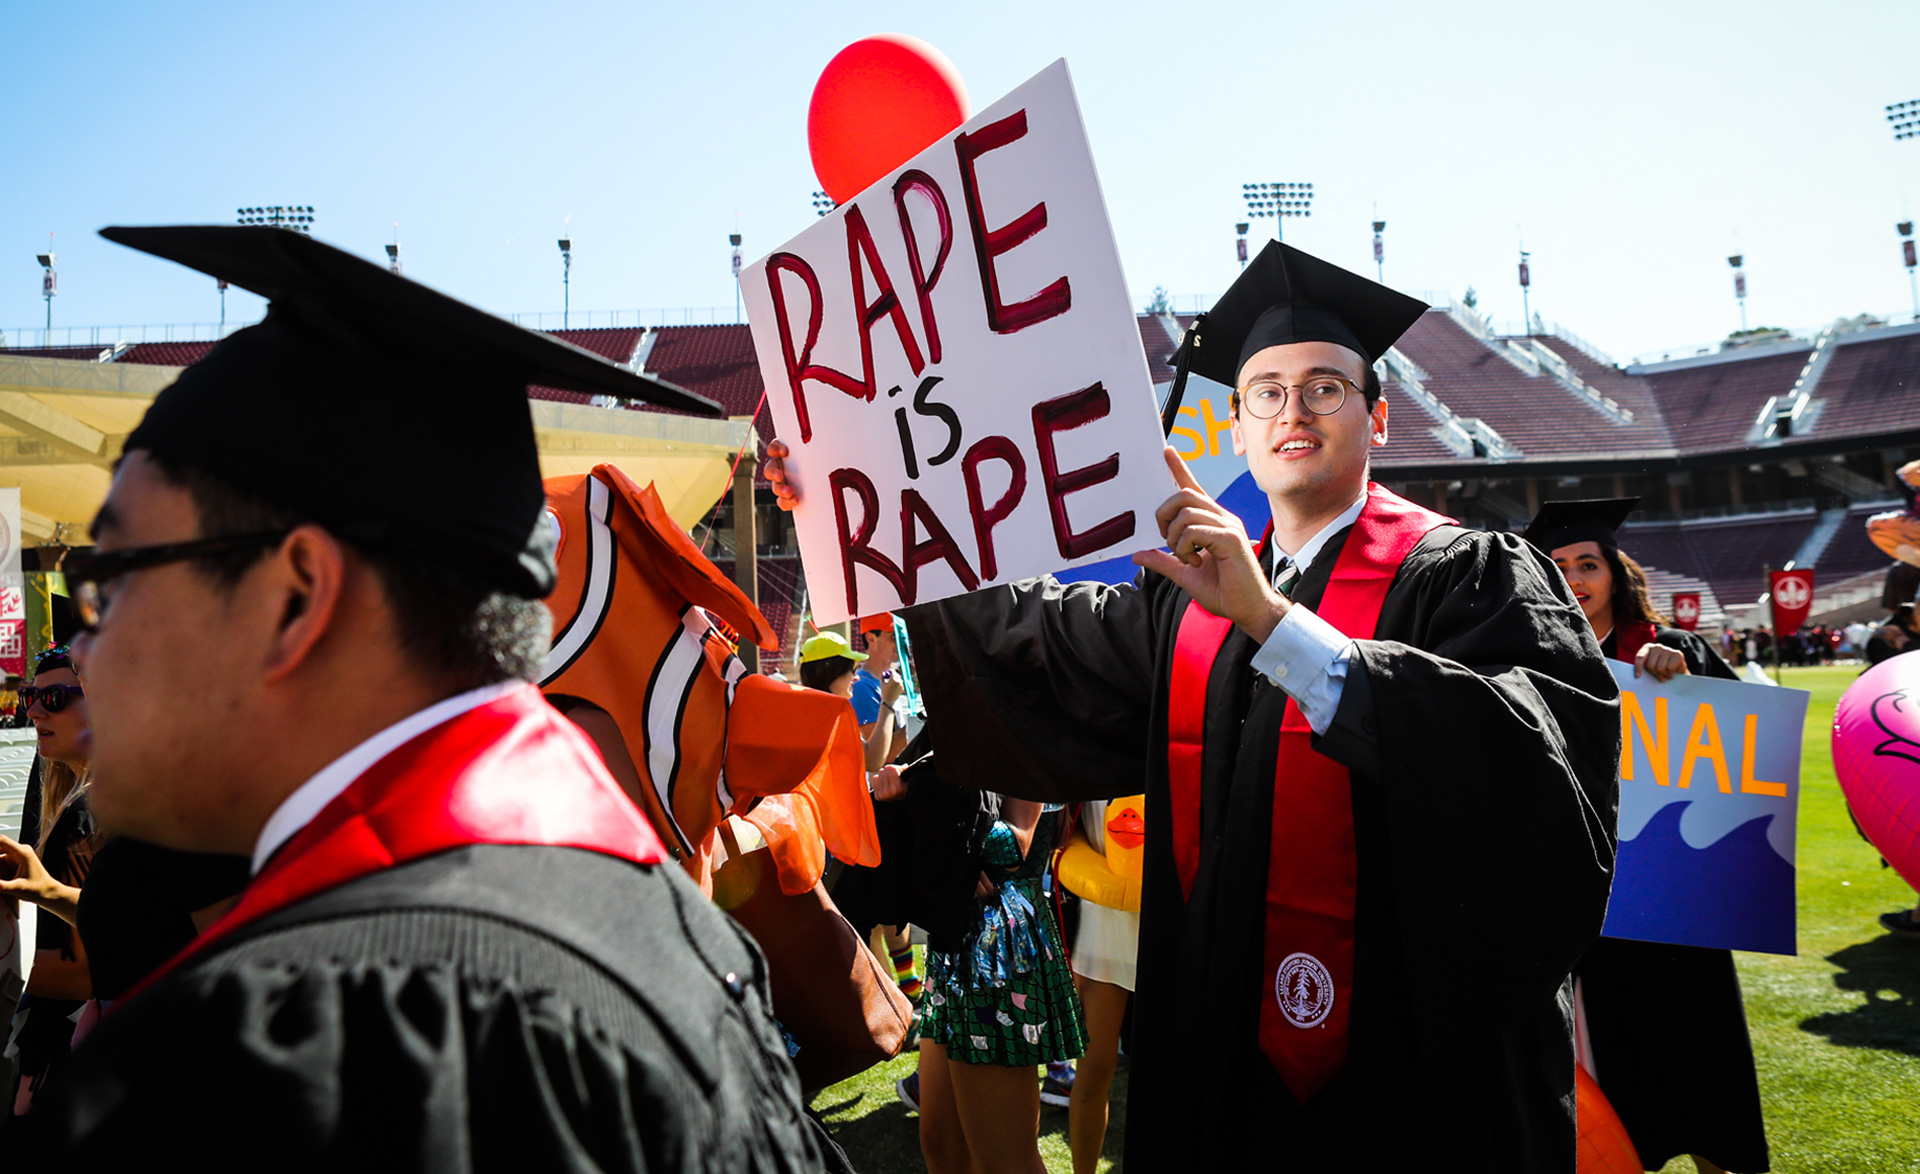 Stanford student Paul Harrison carries a sign in a show of solidarity for the victim in the Brock Turner case during graduation ceremonies at Stanford University on June 12, 2016.